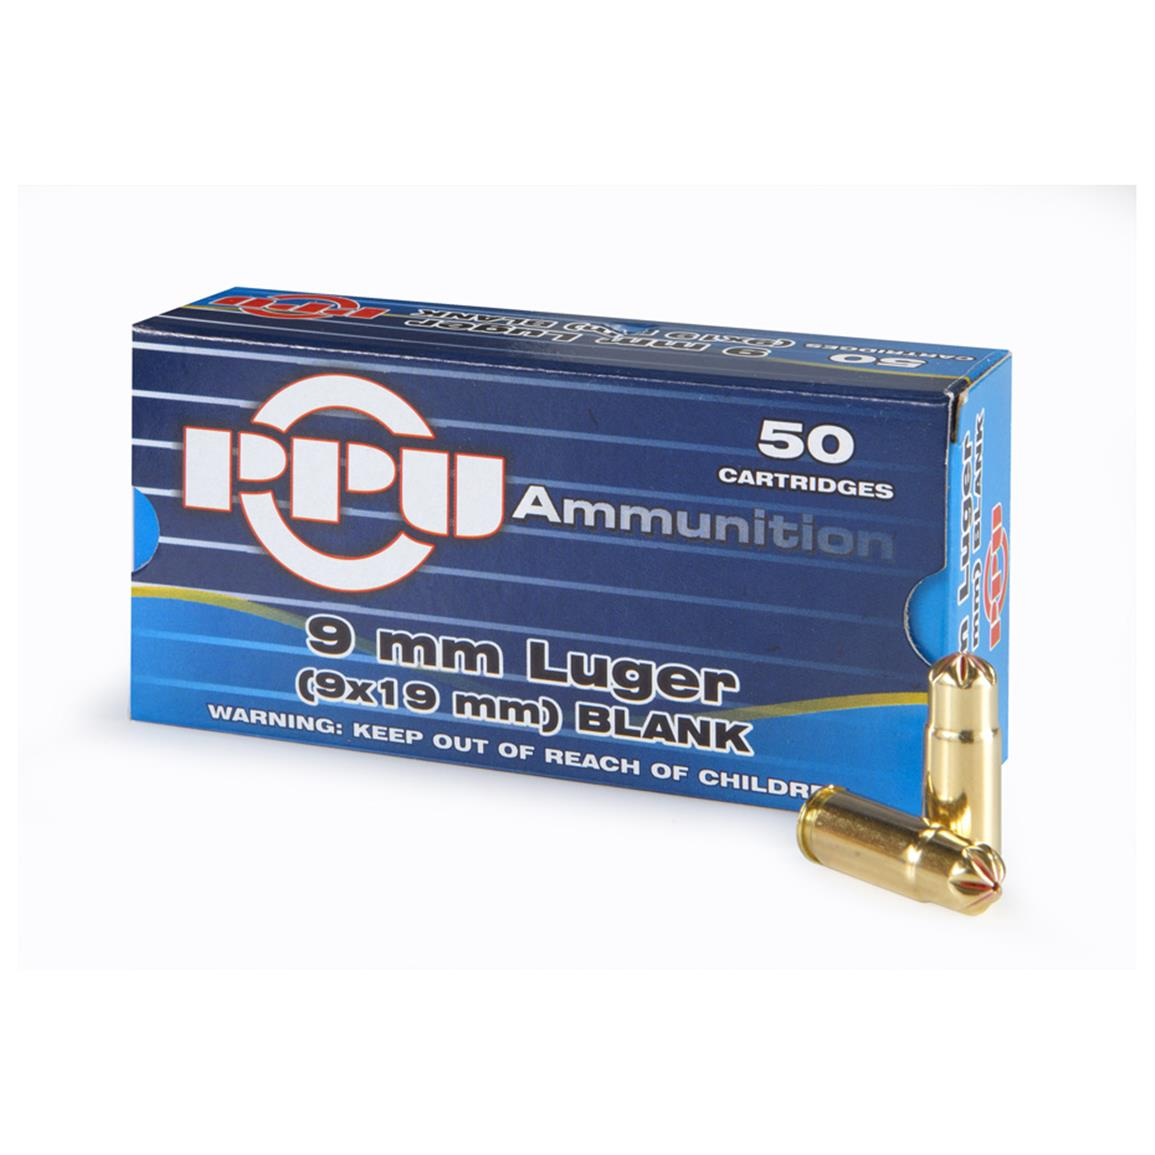 PPU, 9mm Luger, Standard Blank, 50 Rounds